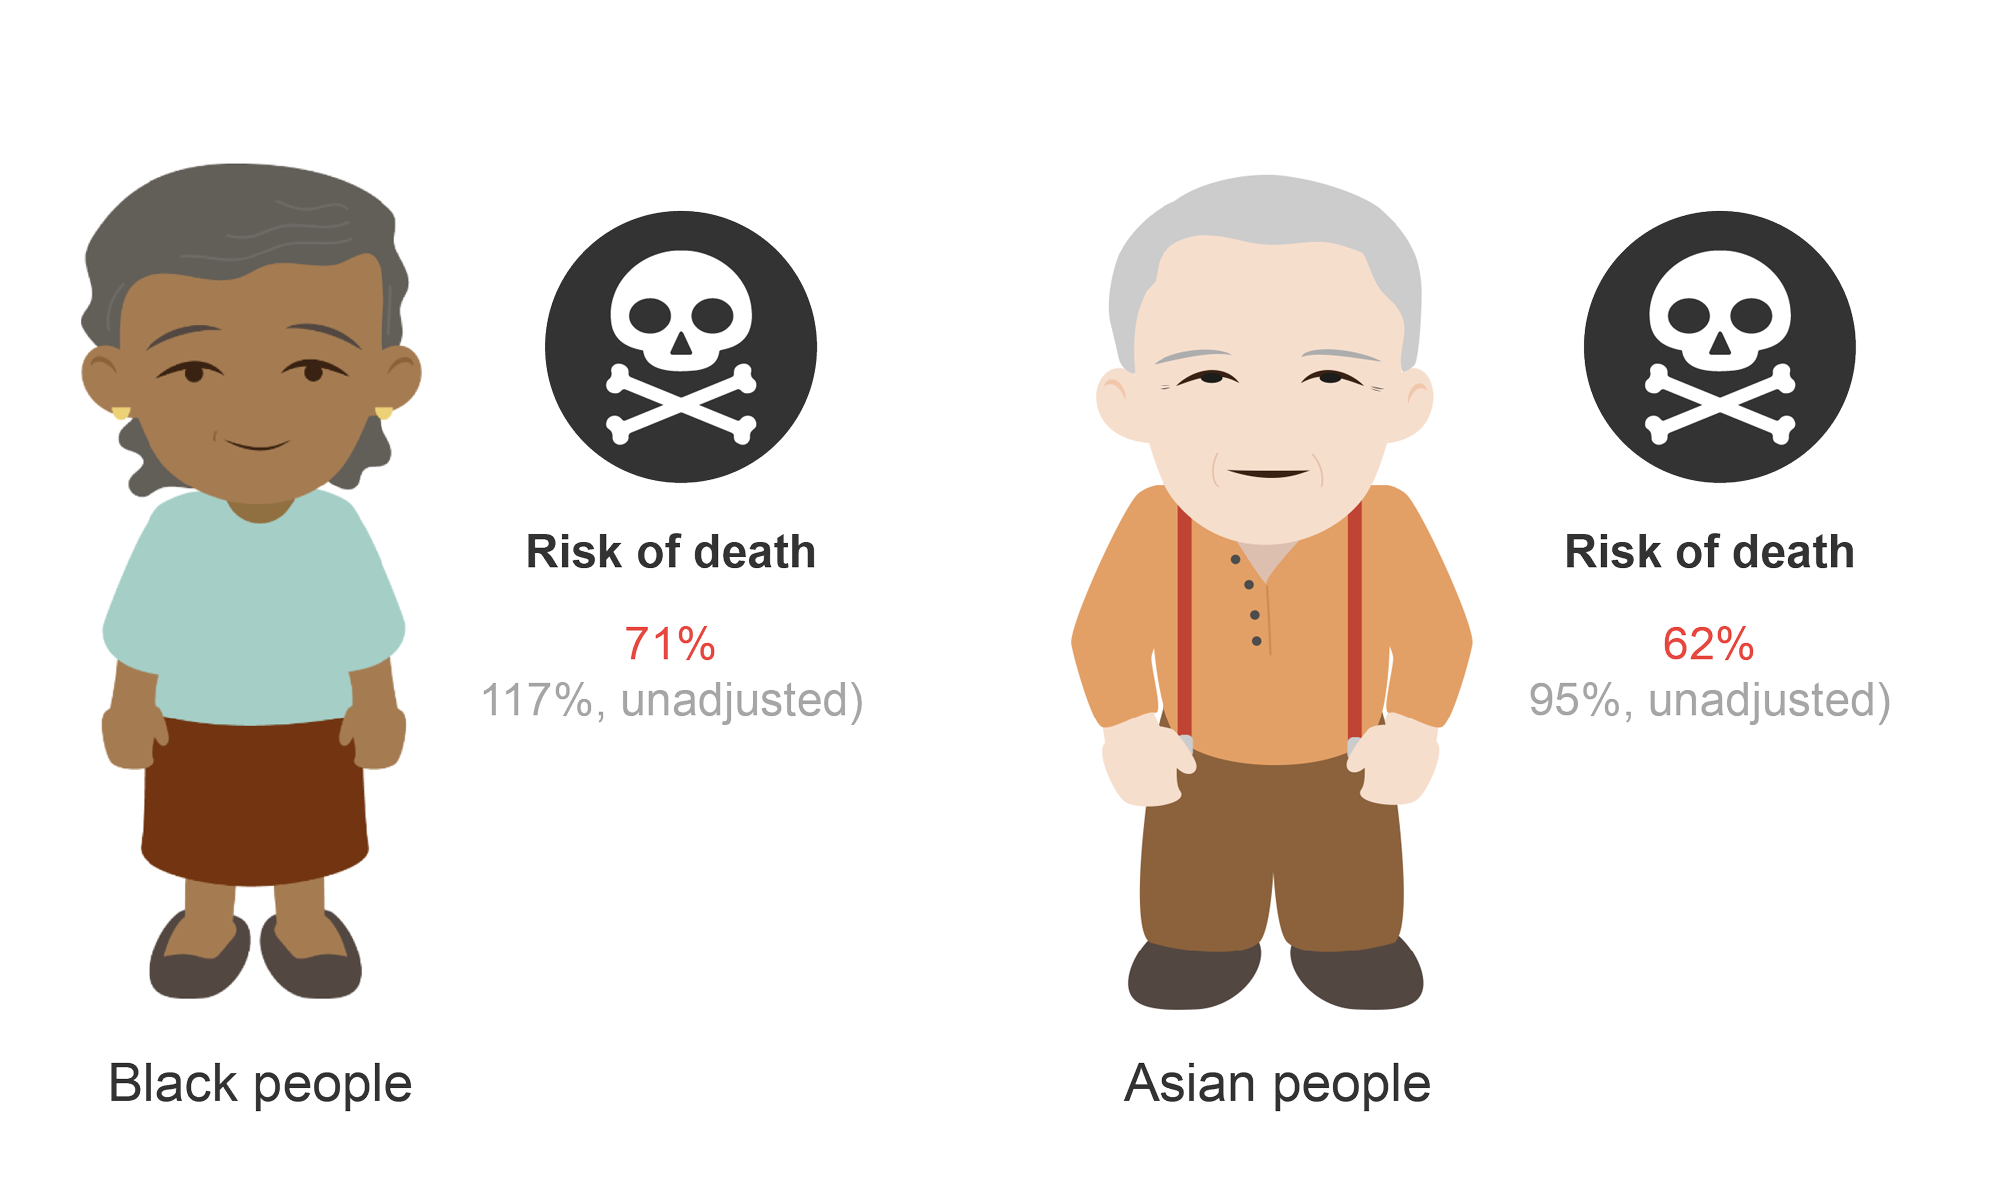 Female black patient and risk of death (71%) and male Asian patient (62%) Cartoon